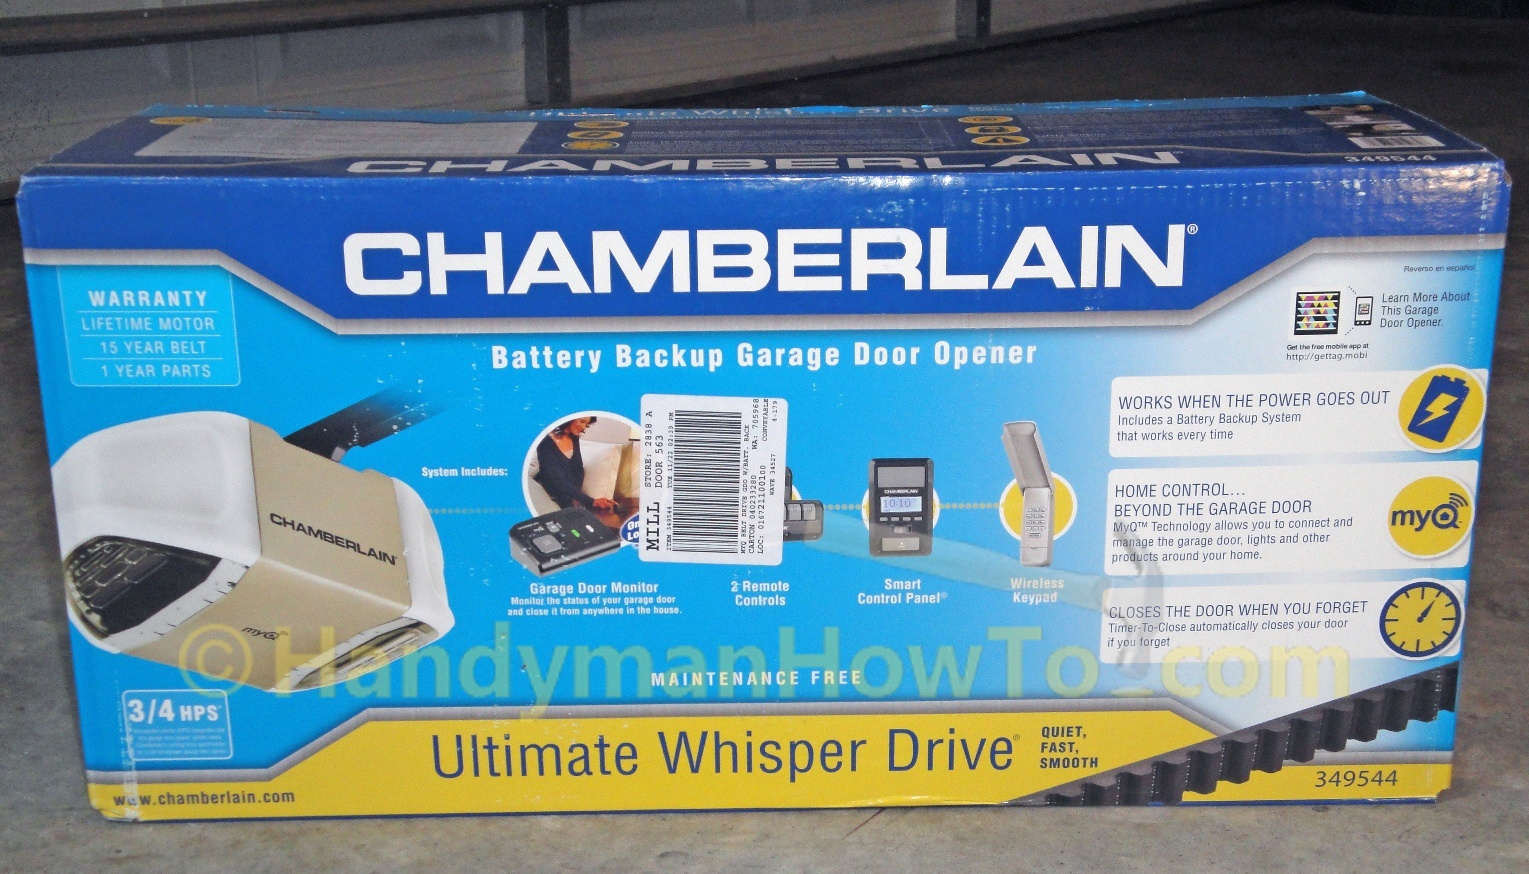 Best new Chamberlain Garage Door Openers Reviewed